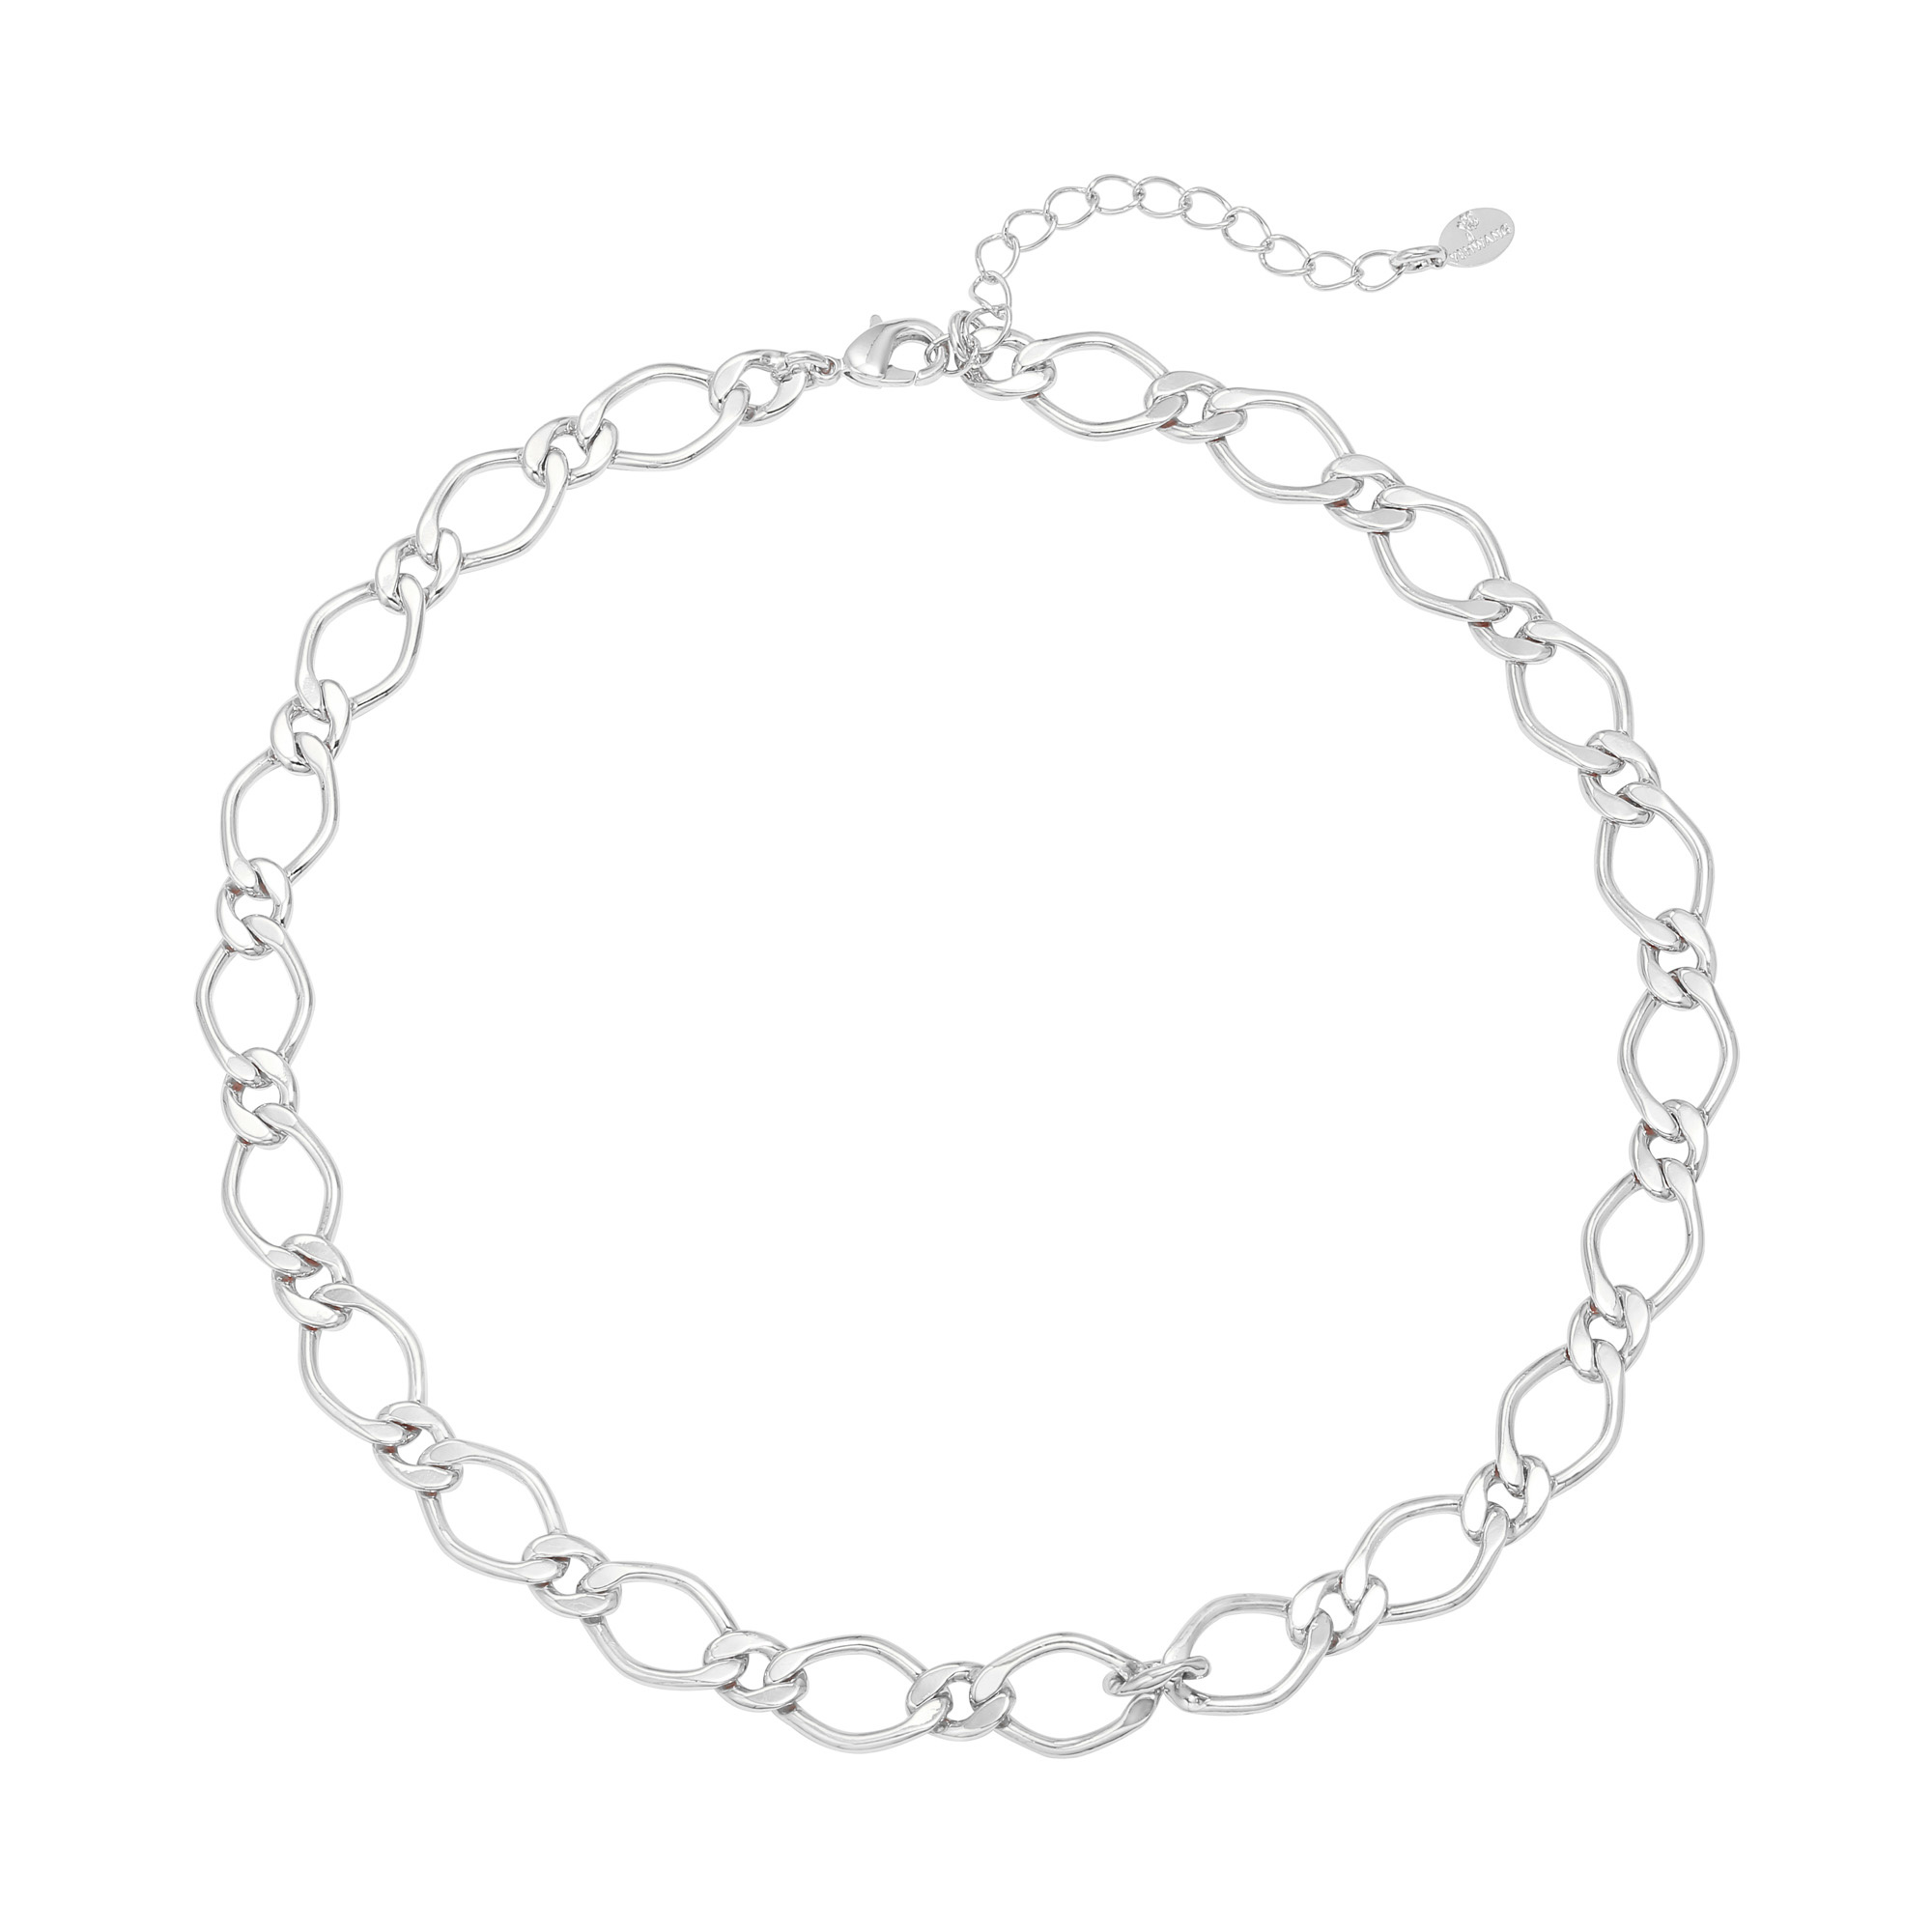 KETTING CHUNKY CHAIN ZILVER